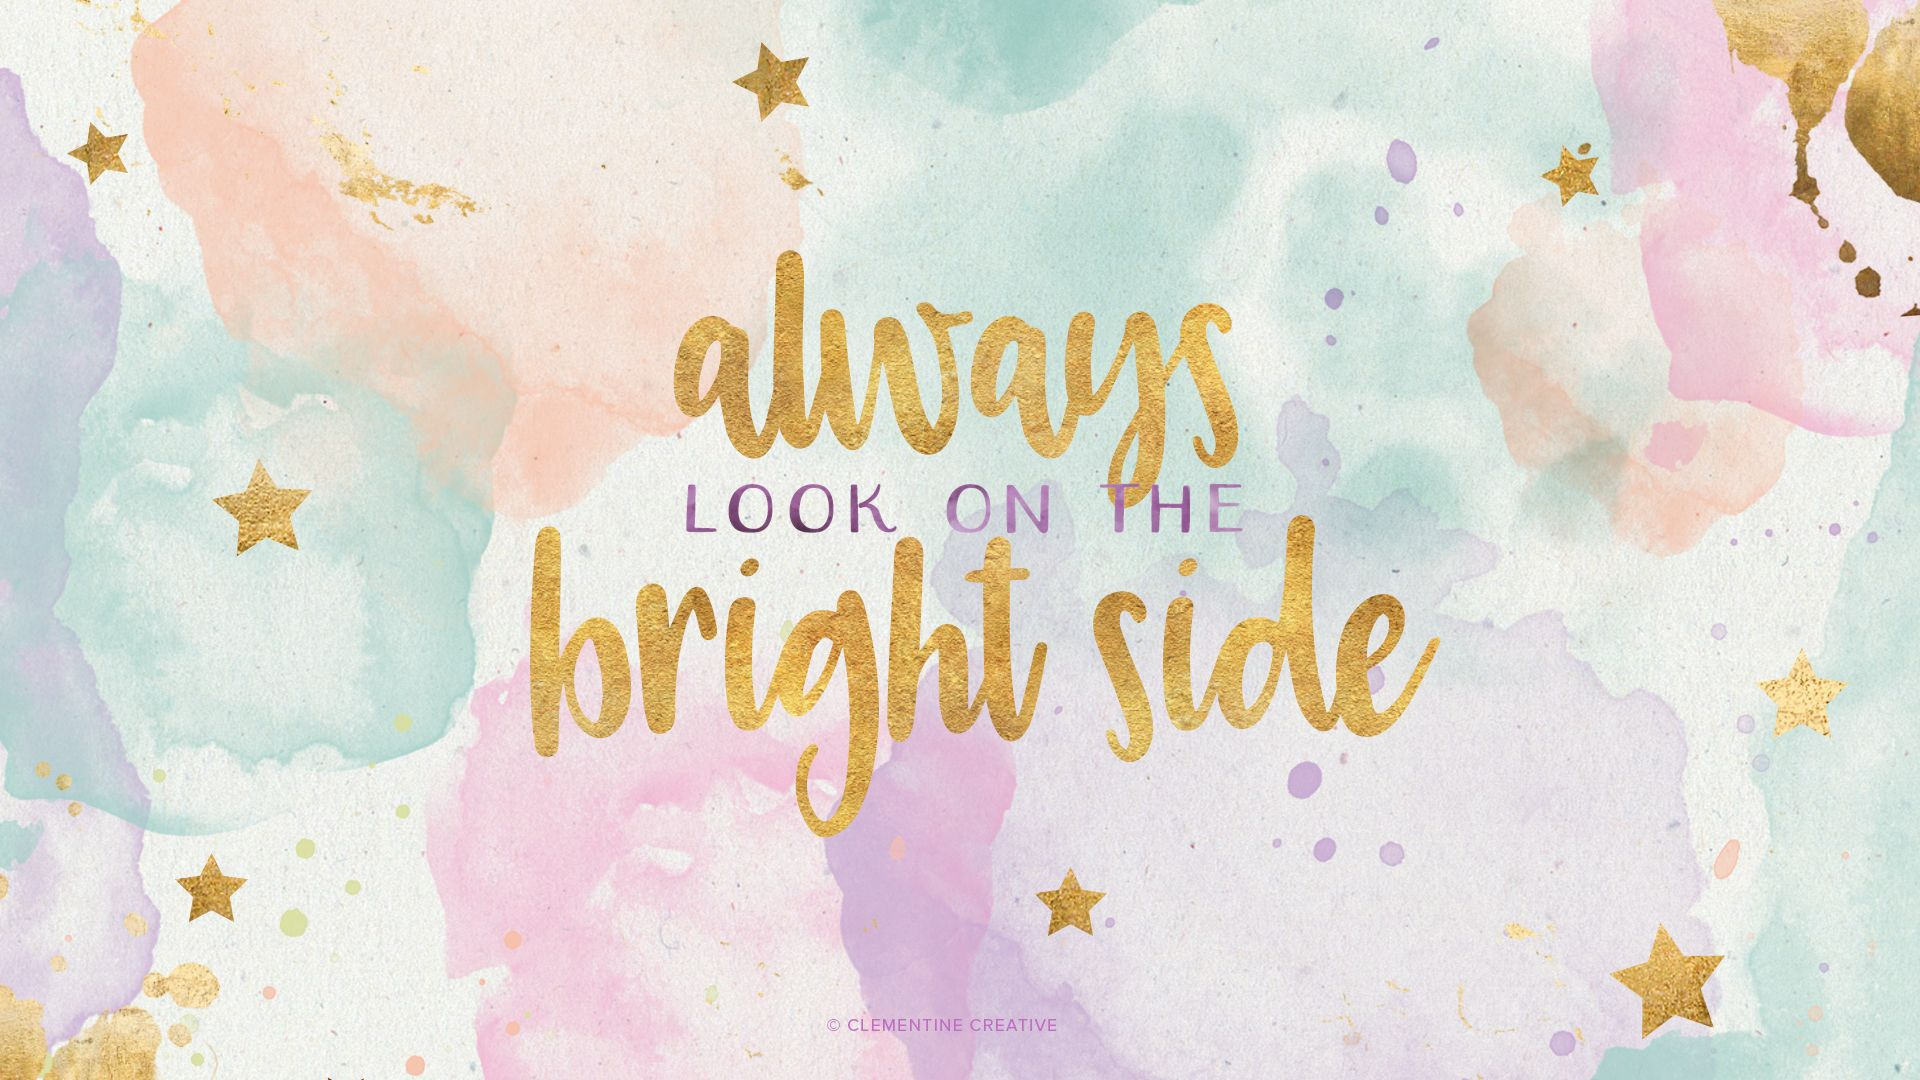 Always Look On The Bright Side Desktop Wallpaper Wallpaper Quotes Cute Desktop Wallpaper Cute Quotes